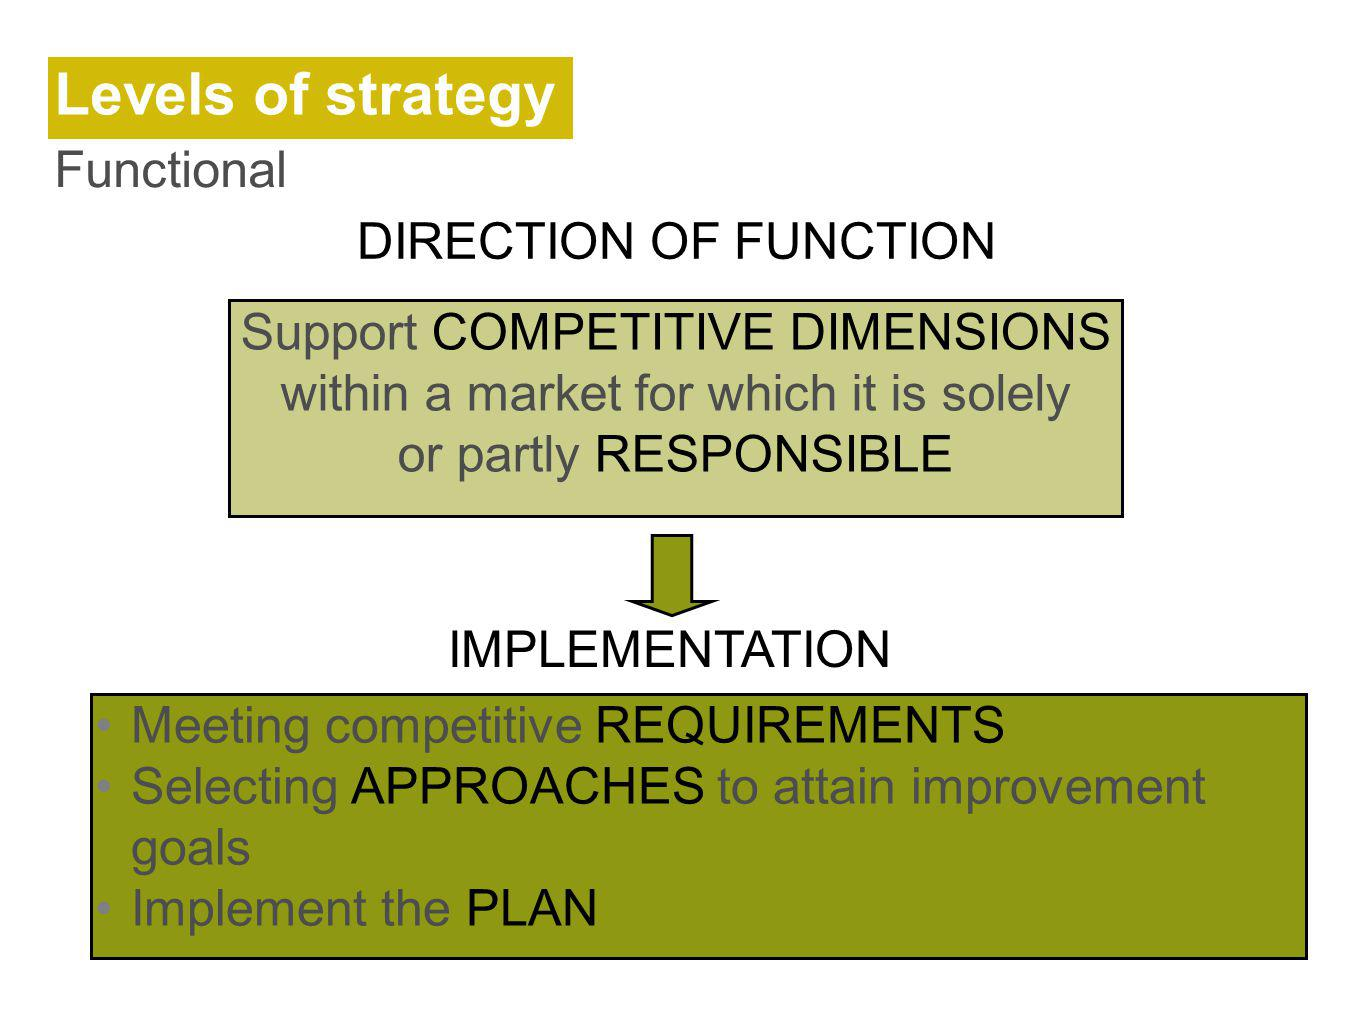 Support COMPETITIVE DIMENSIONS within a market for which it is solely